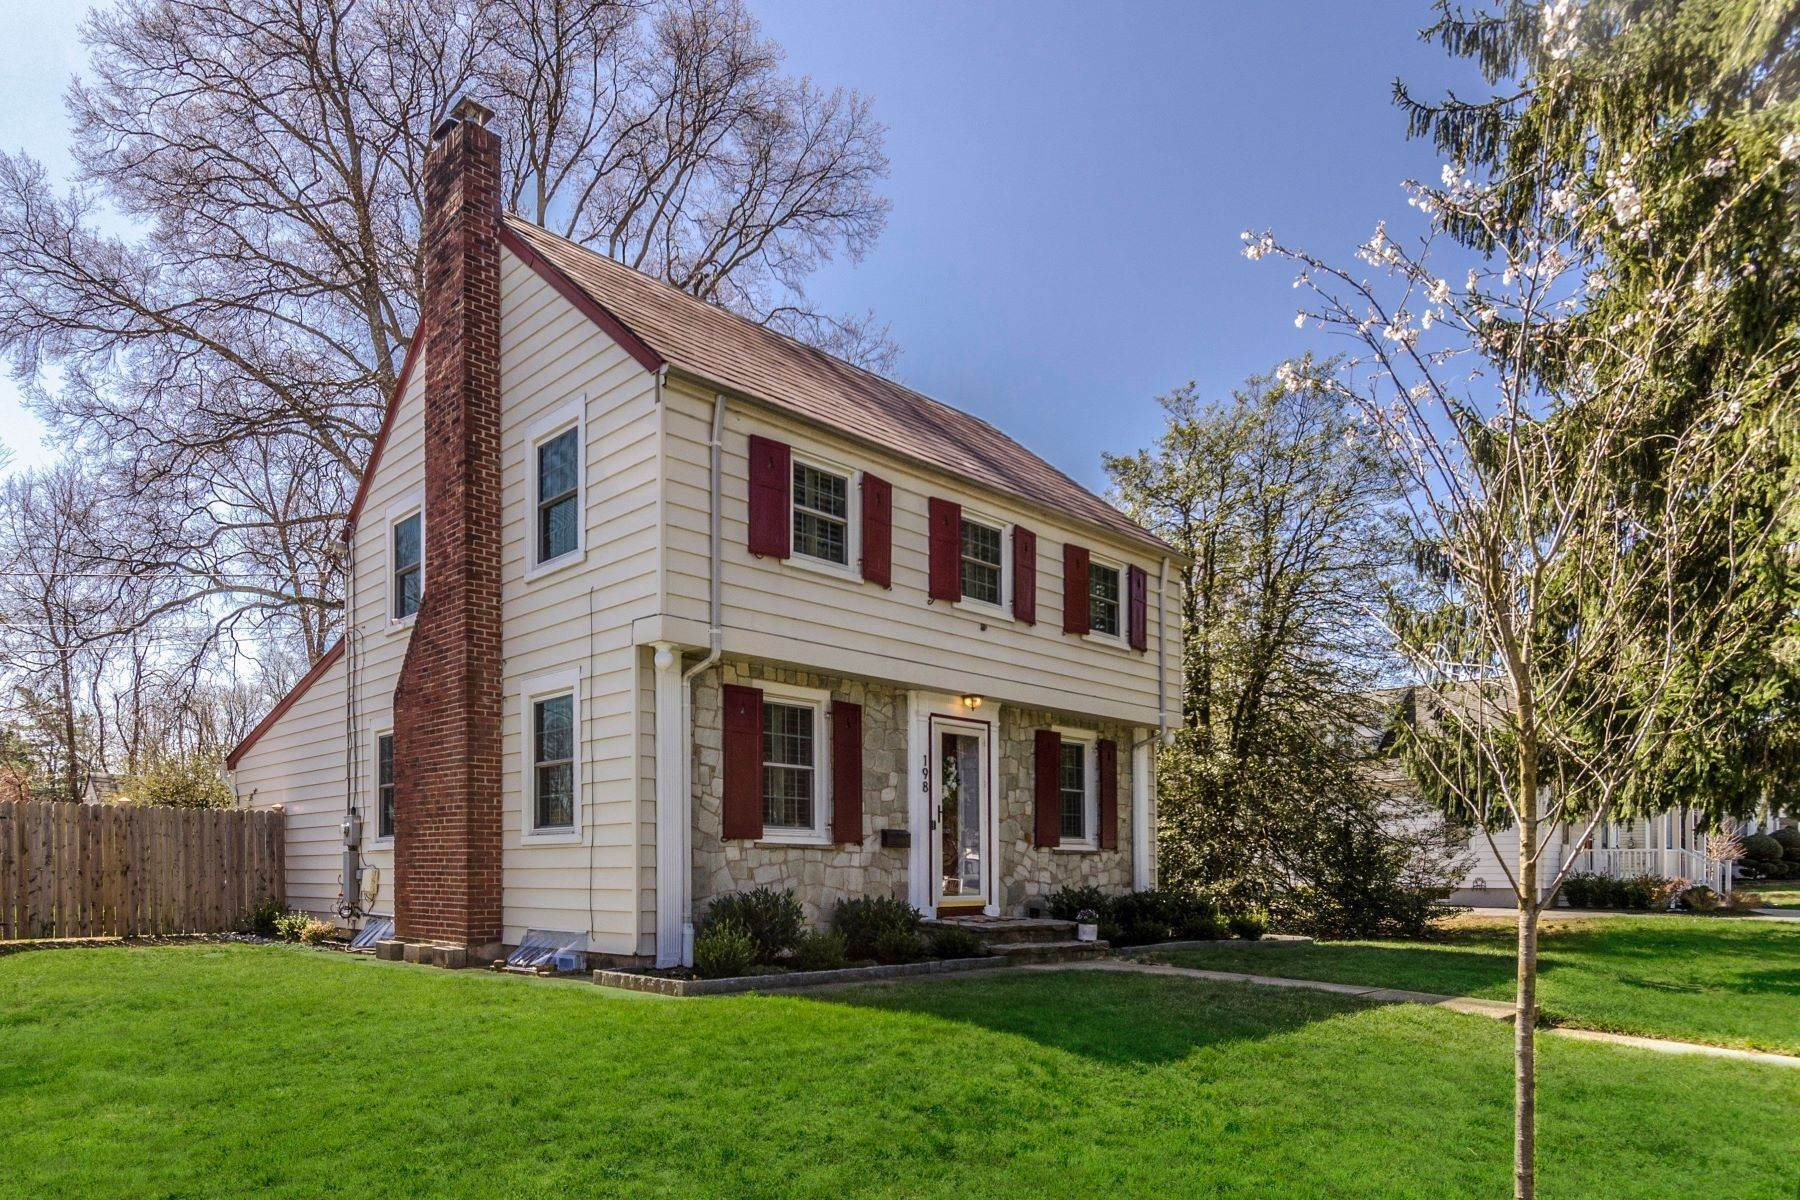 Single Family Homes for Sale at Charm of the Past Meets Modern Day Amenities 198 Park Avenue, Hamilton, New Jersey 08690 United States